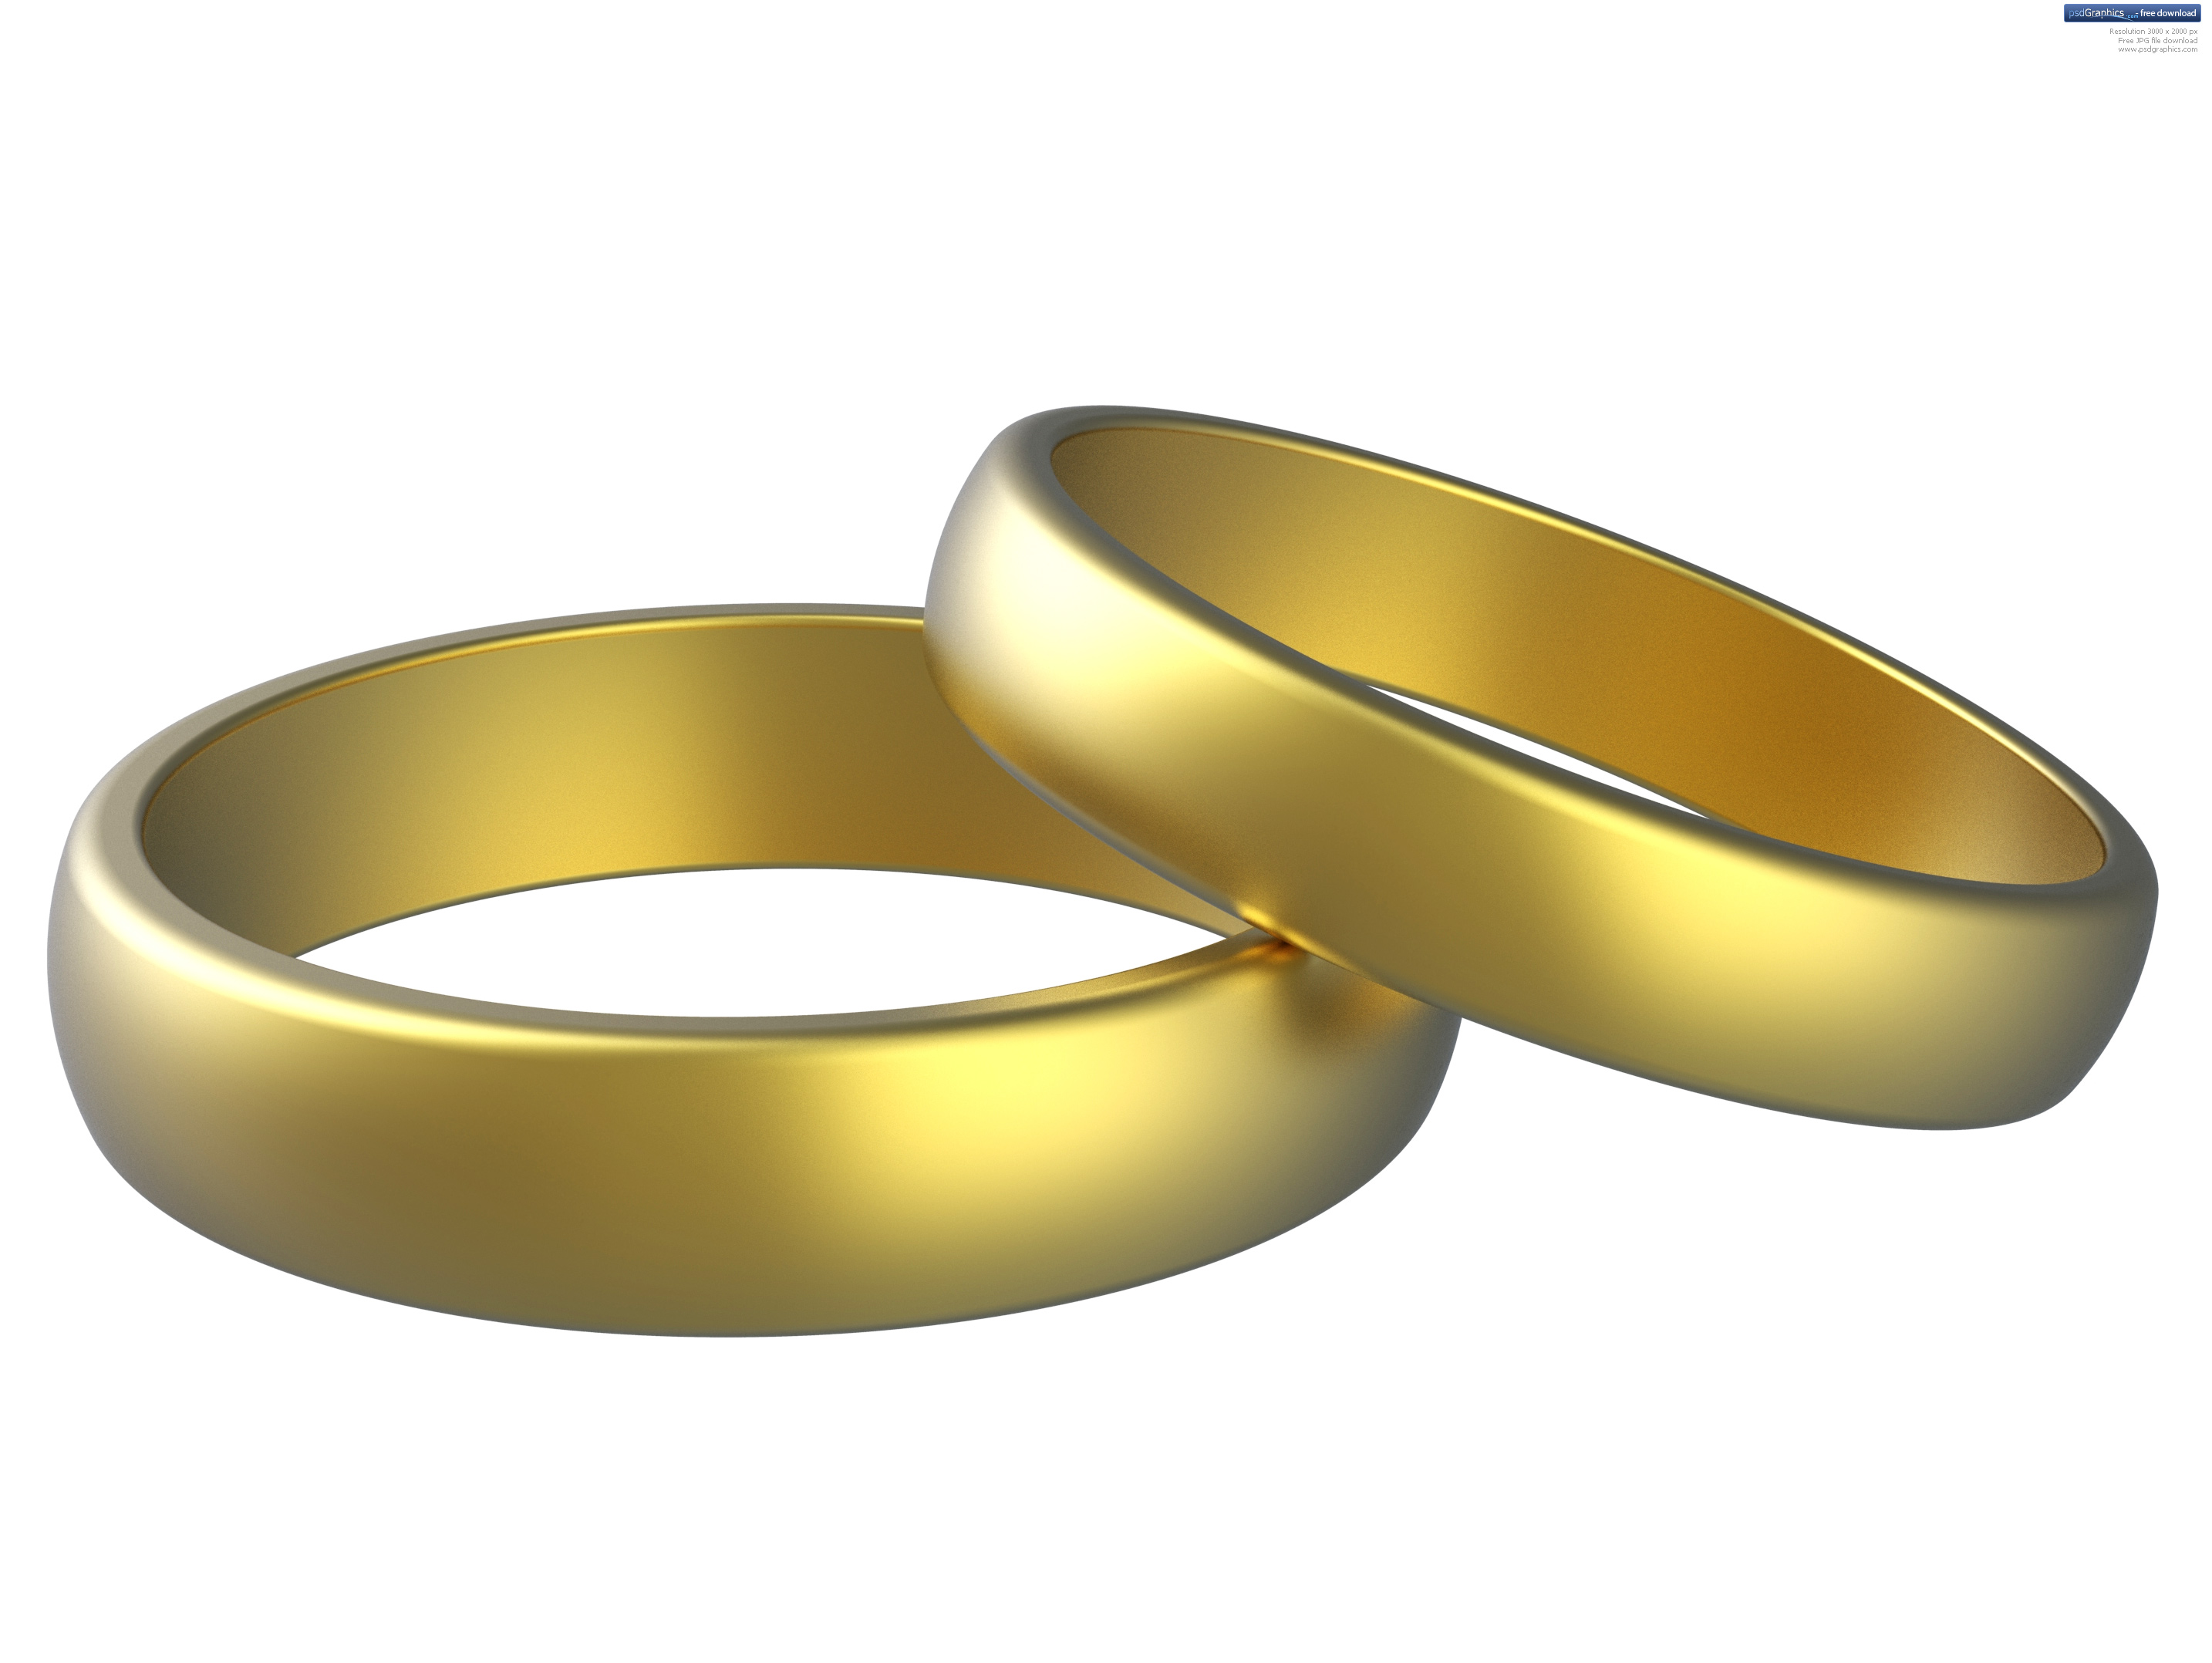 Fabulous Gold Wedding Rings Clip Art 2868 x 2156 · 650 kB · jpeg